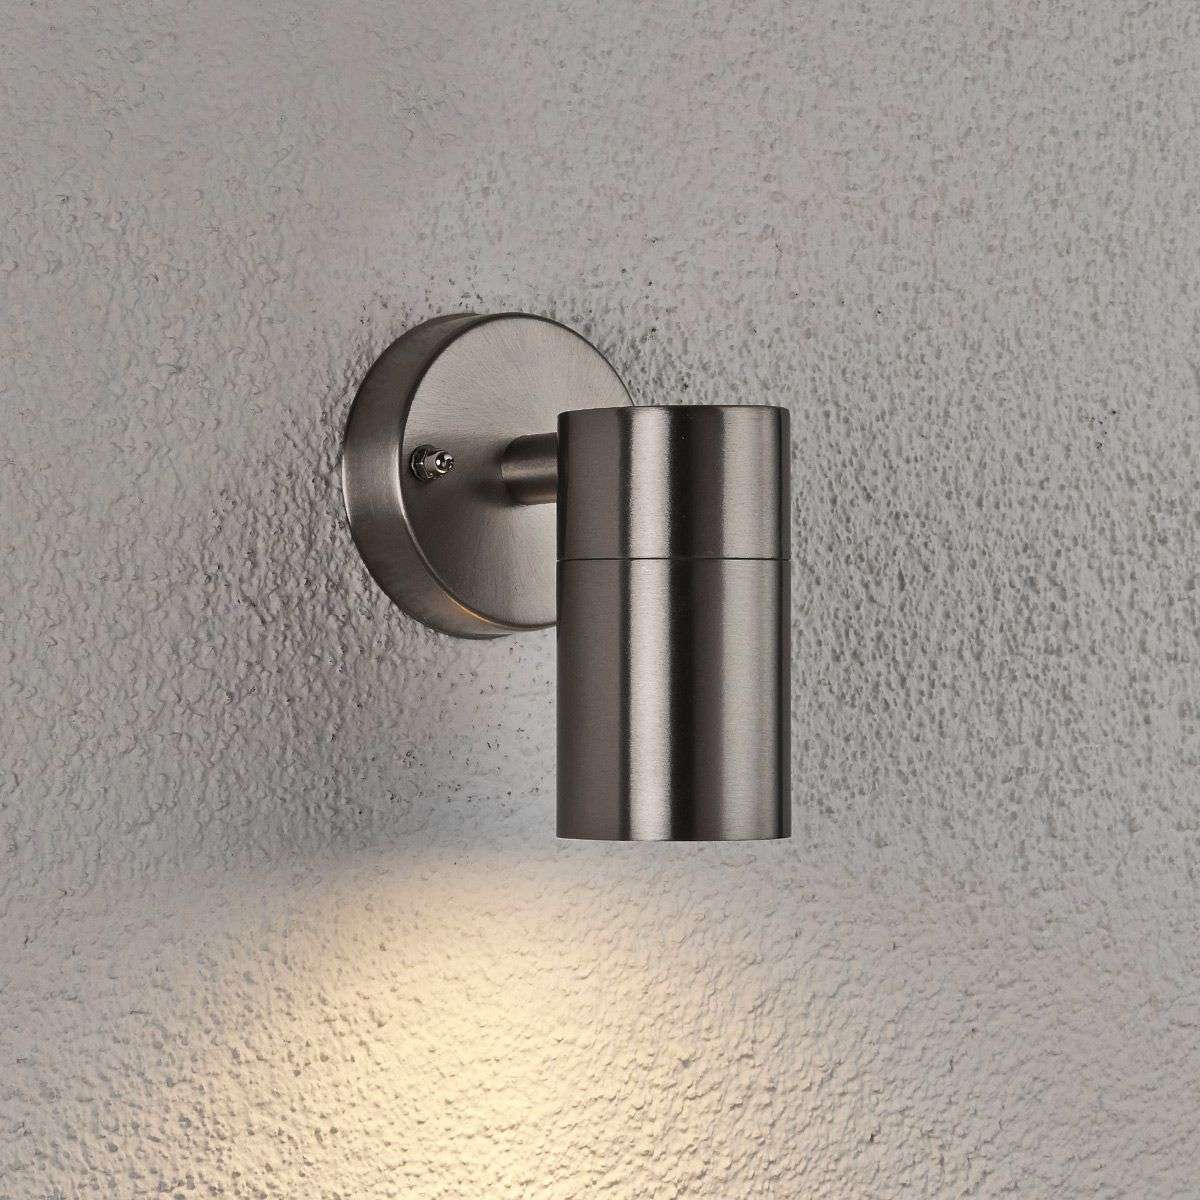 Hakan stainless steel wall lamp for outside lights hakan stainless steel wall lamp for outside 9960009 31 aloadofball Image collections